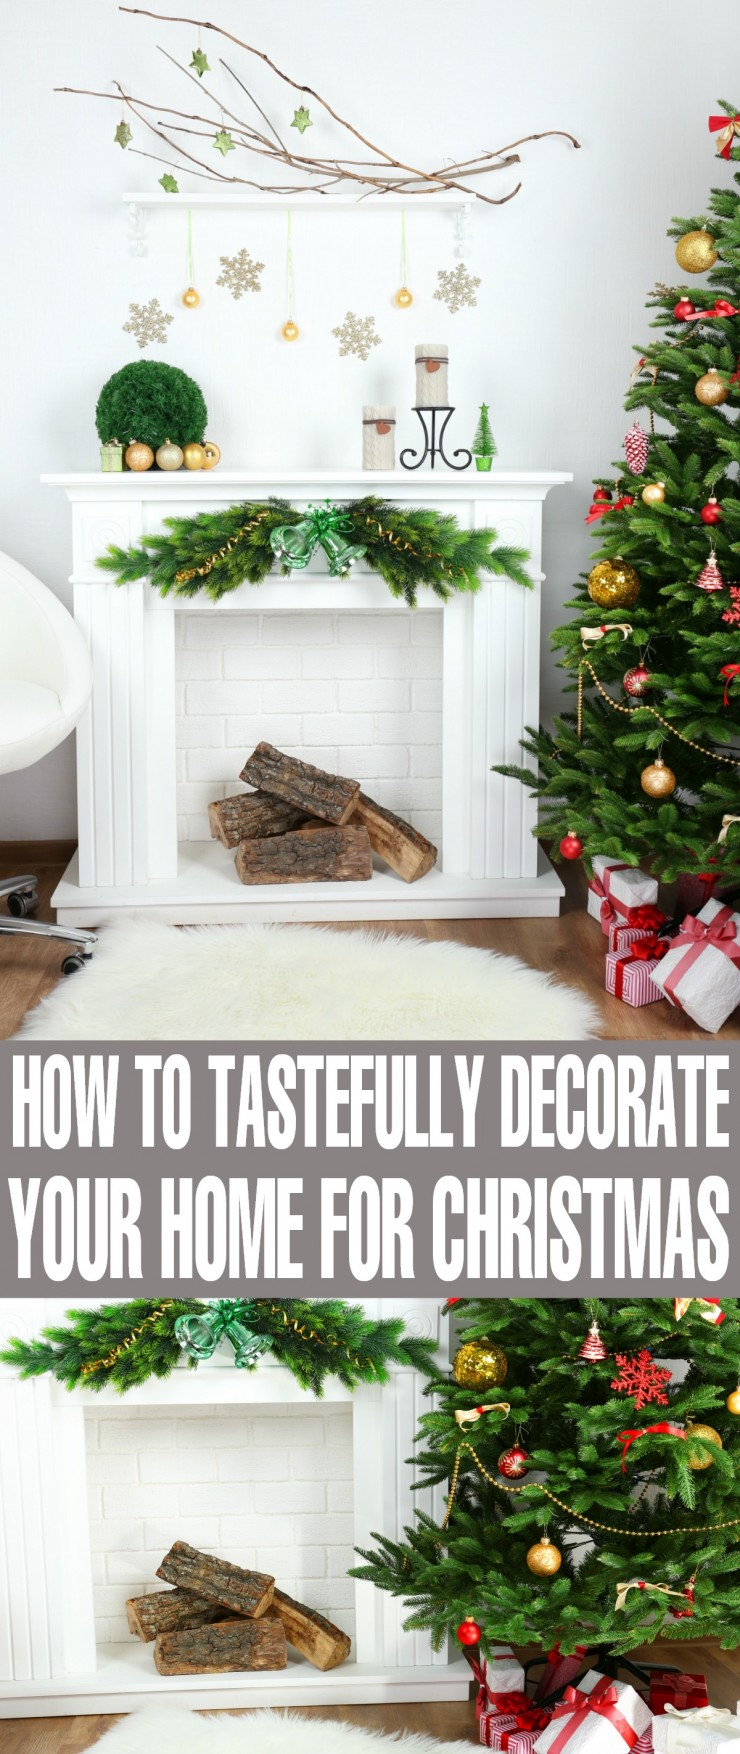 weve come up with a few tips to help you tastefully decorate your home christmas - Home For Christmas